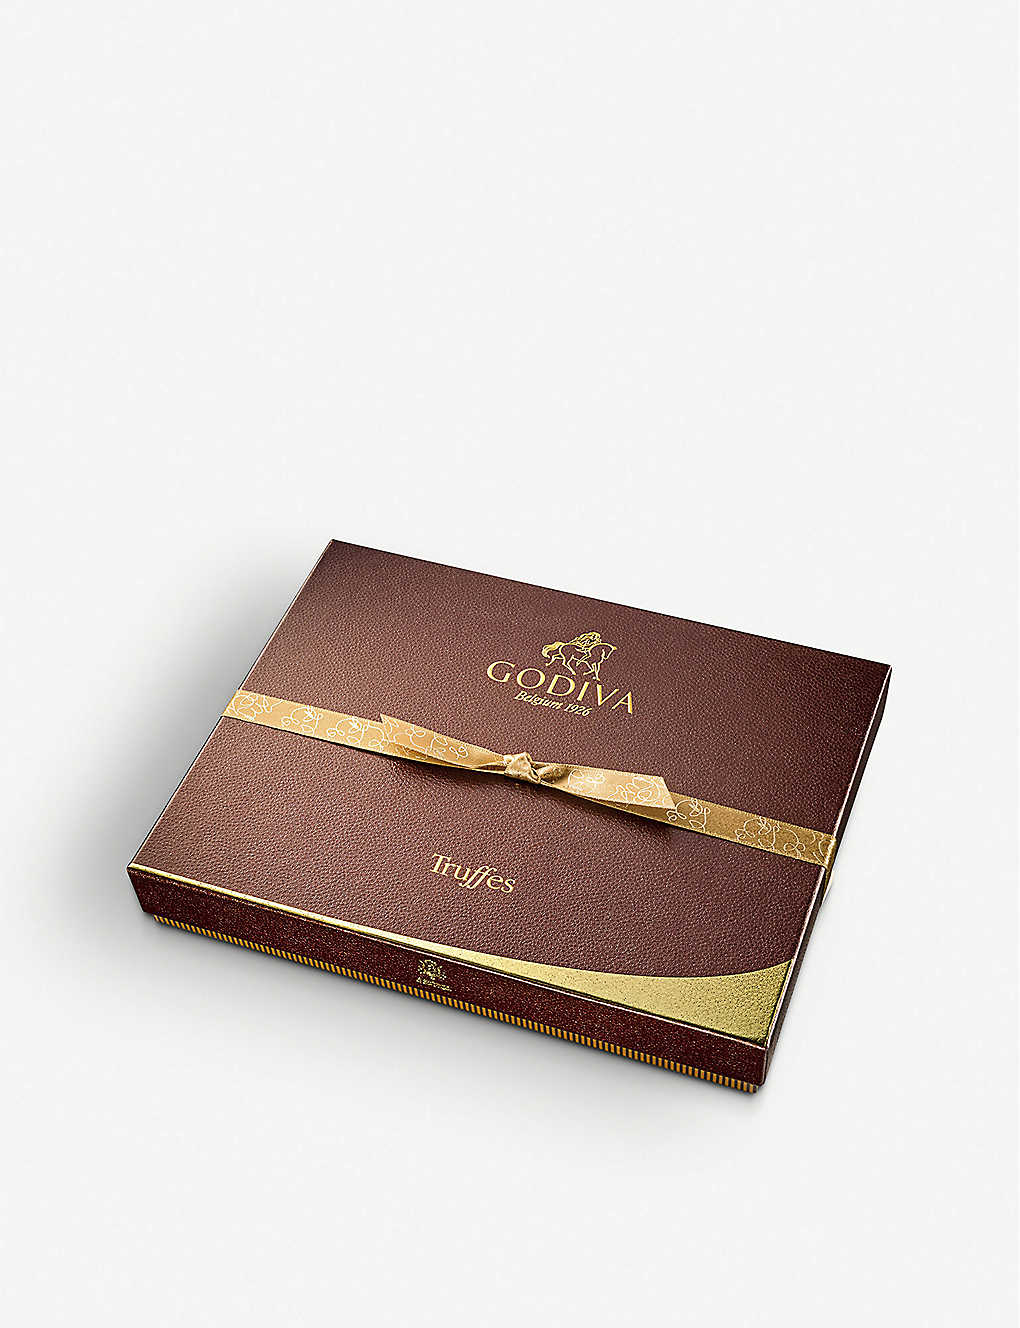 GODIVA: Truffe Signature assorted chocolate truffles box of 24